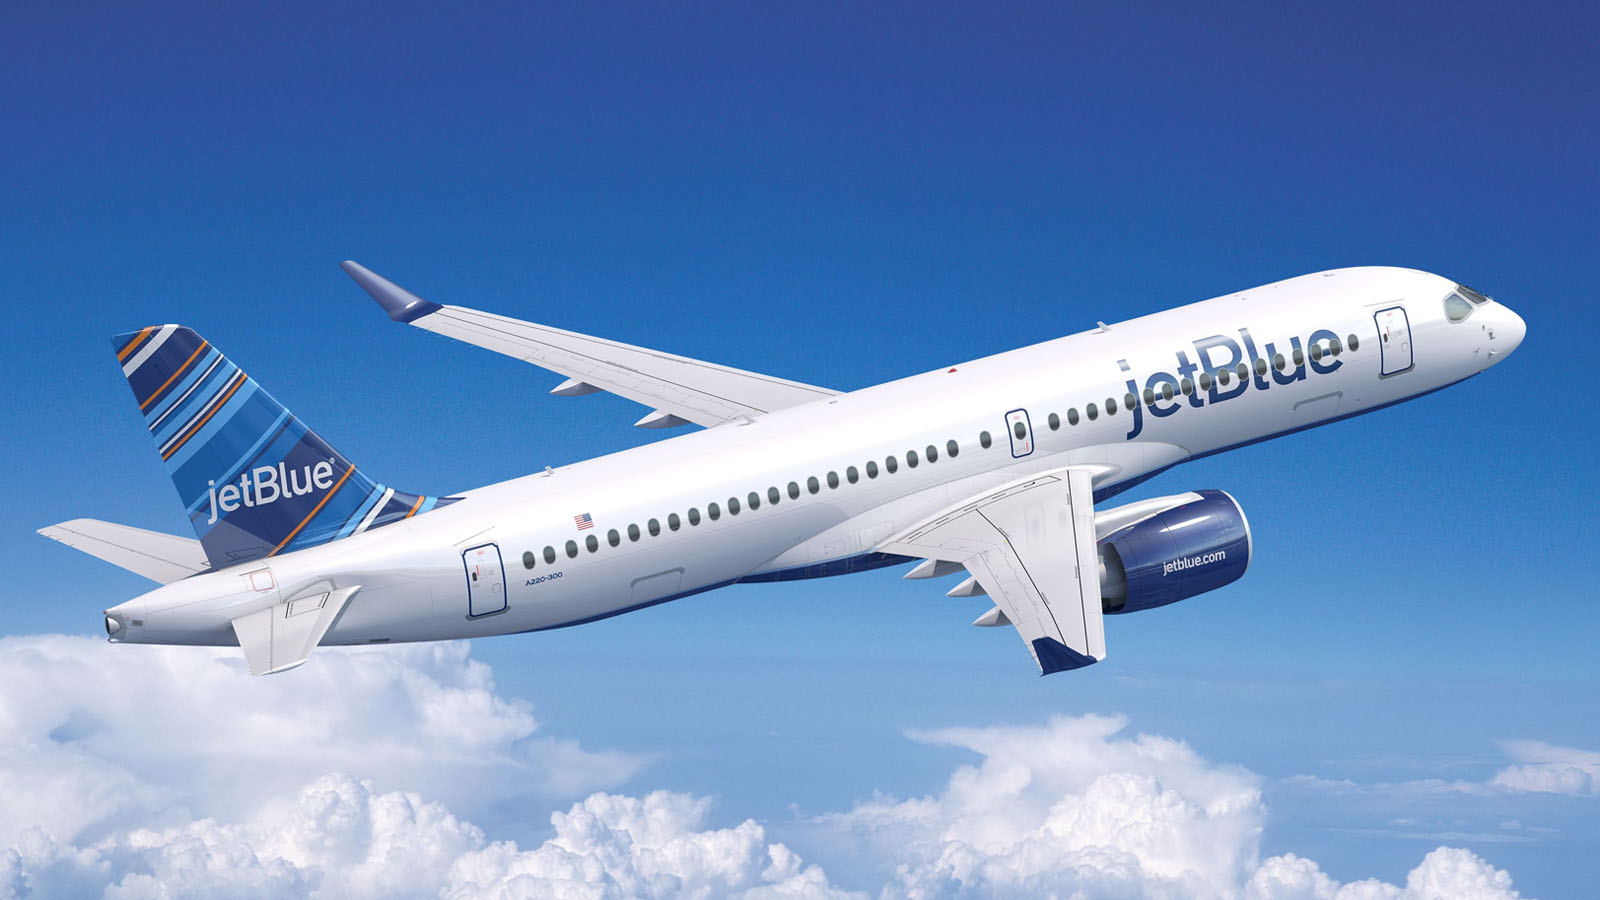 GCAA welcomes the planned operations of JetBlue in Guyana